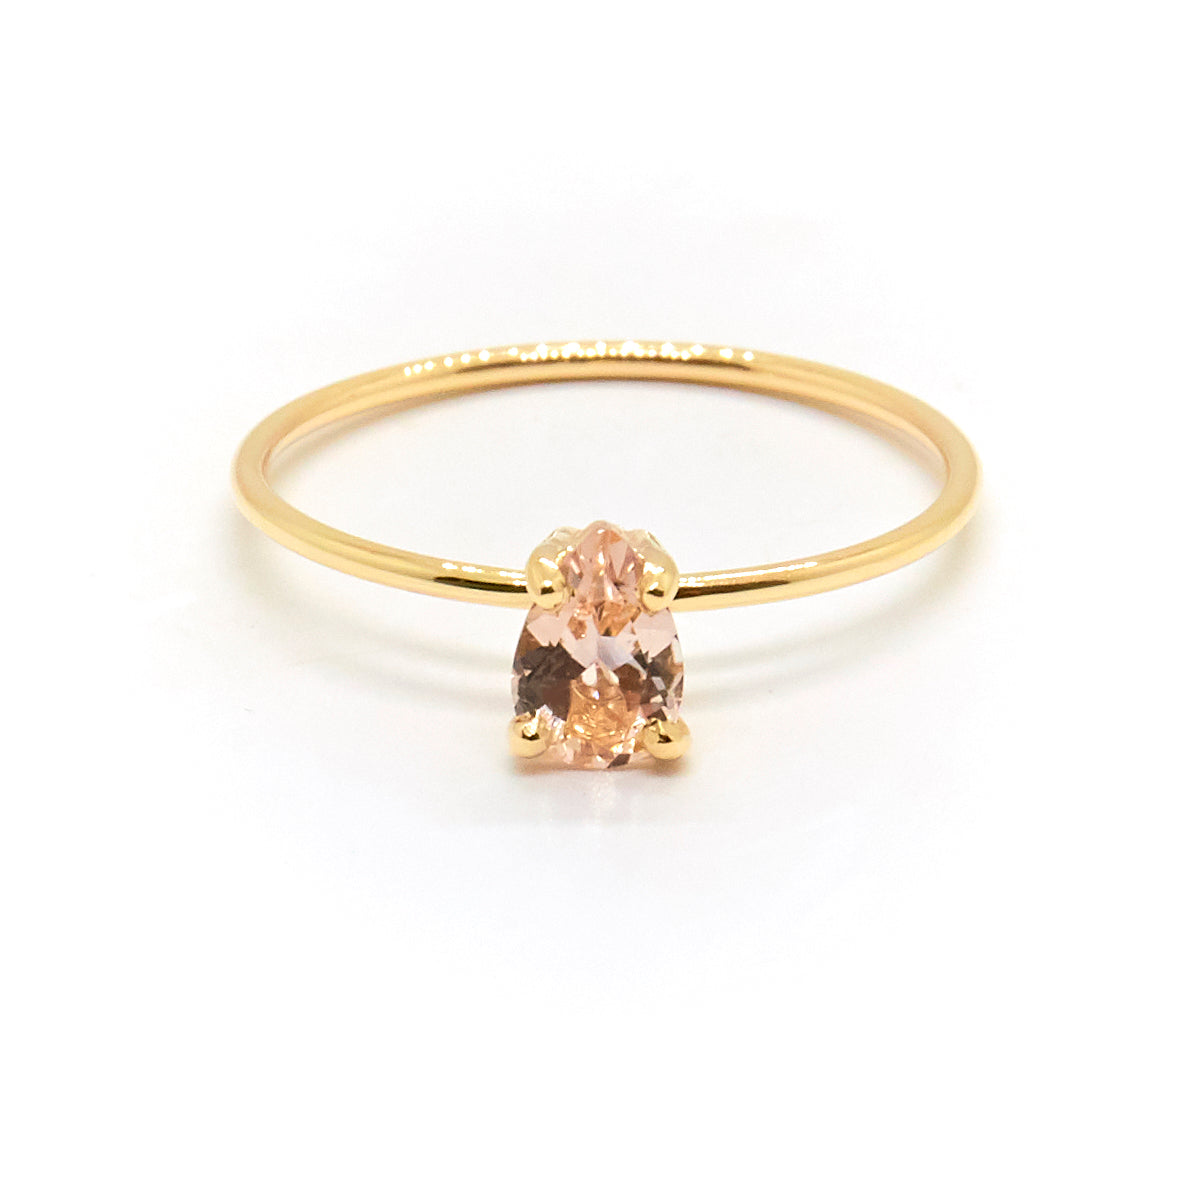 Tiny Pear Ring With Morganite